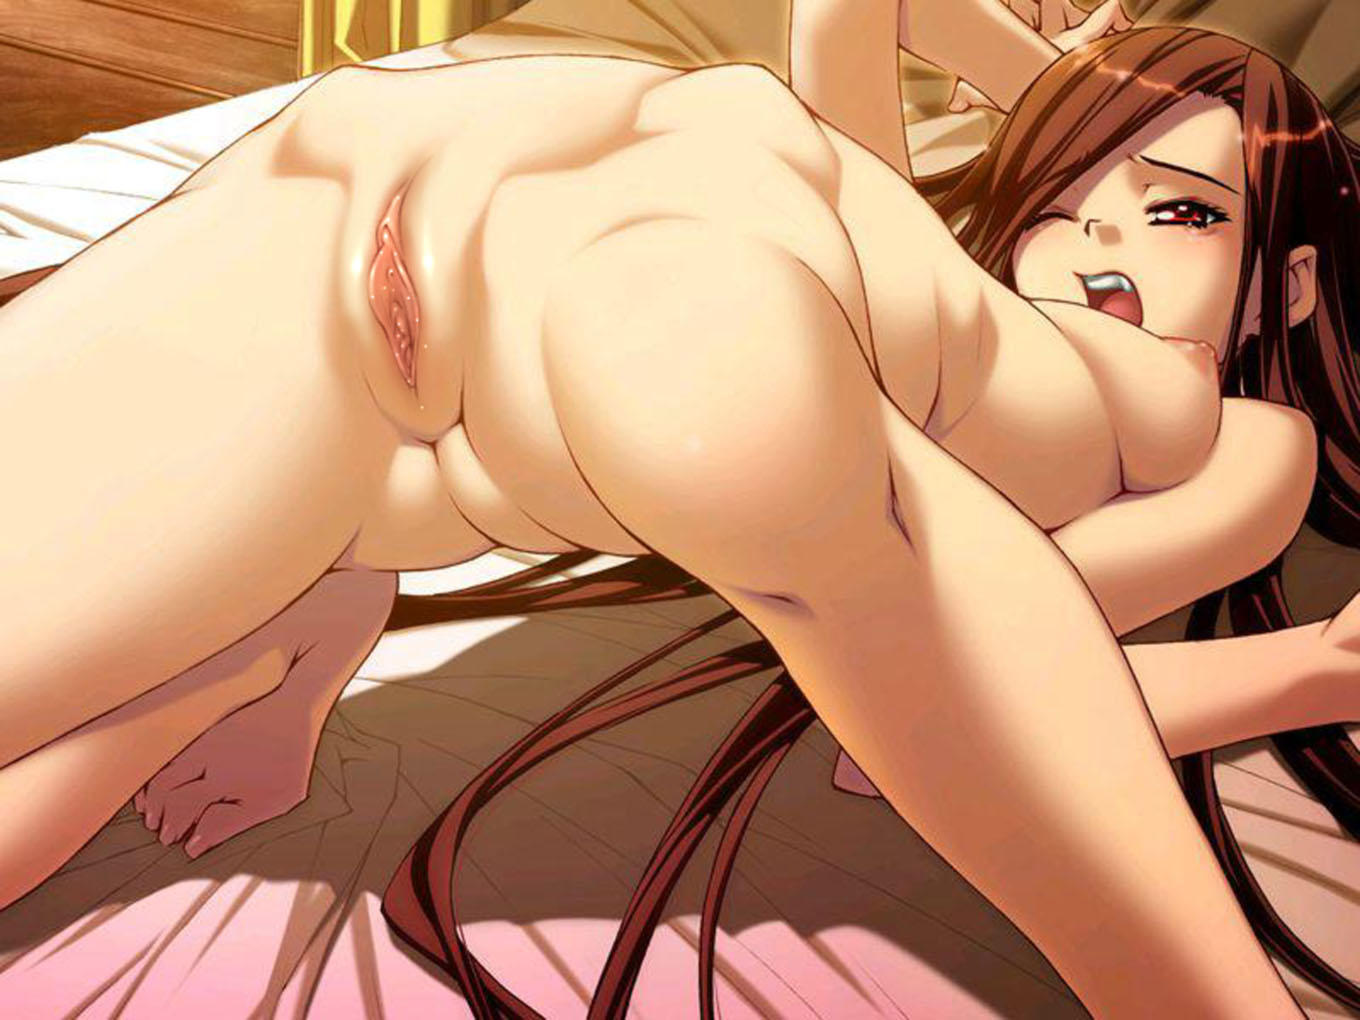 Zombie anime girls naked sexy tube